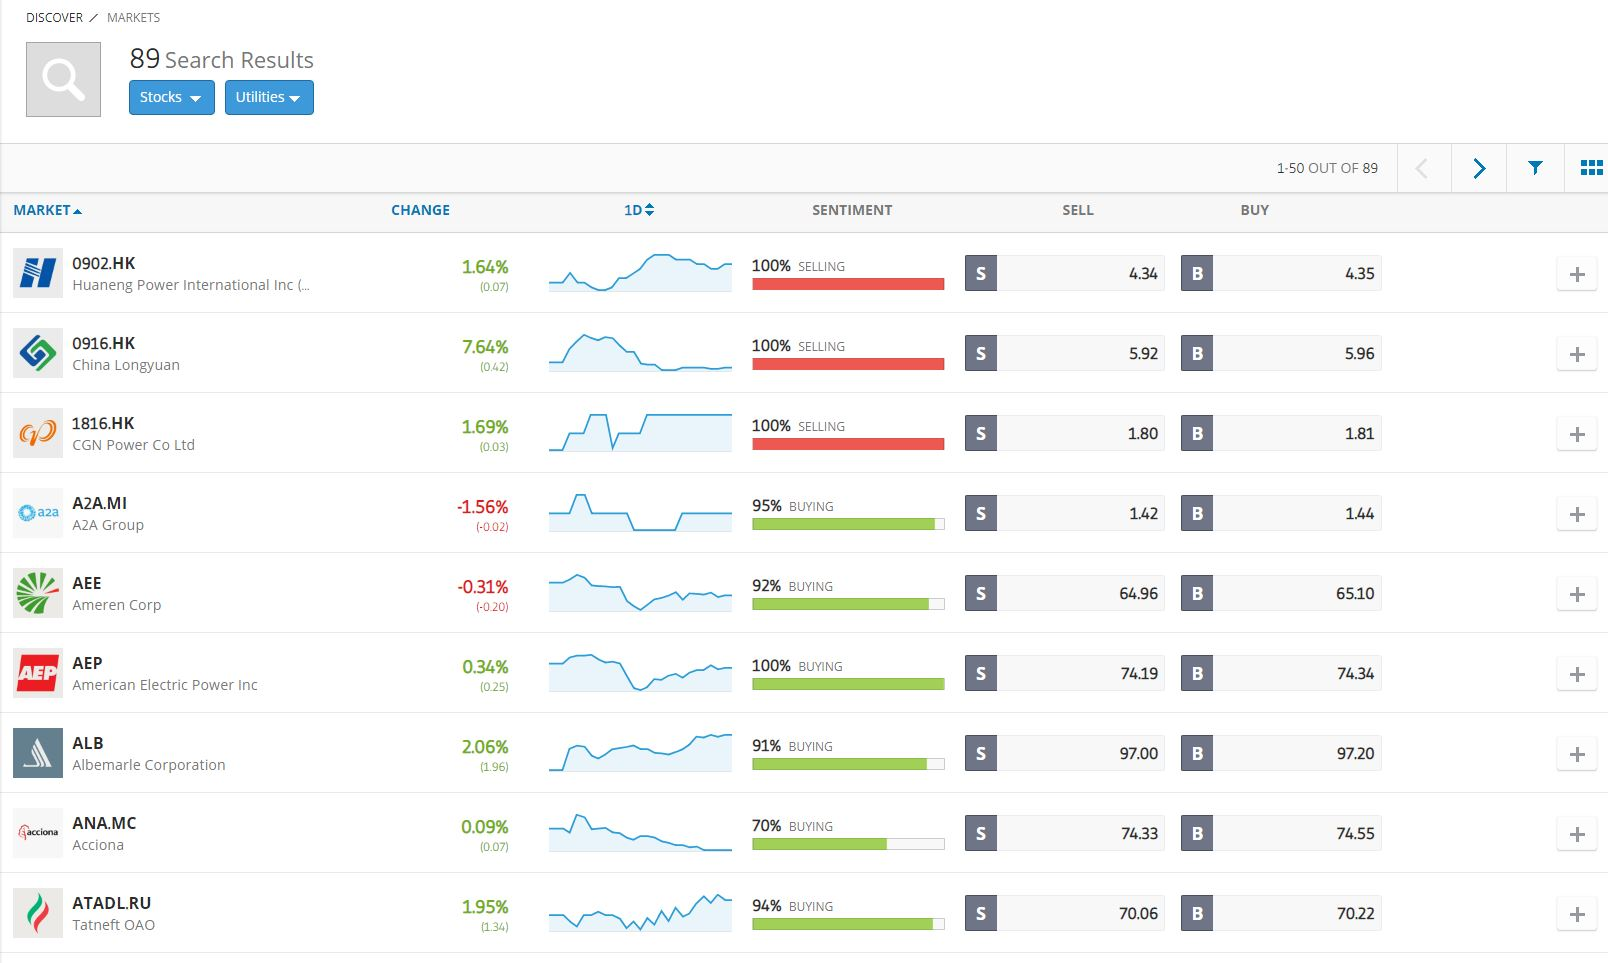 Screenshot of the search and filter functionality within eToro